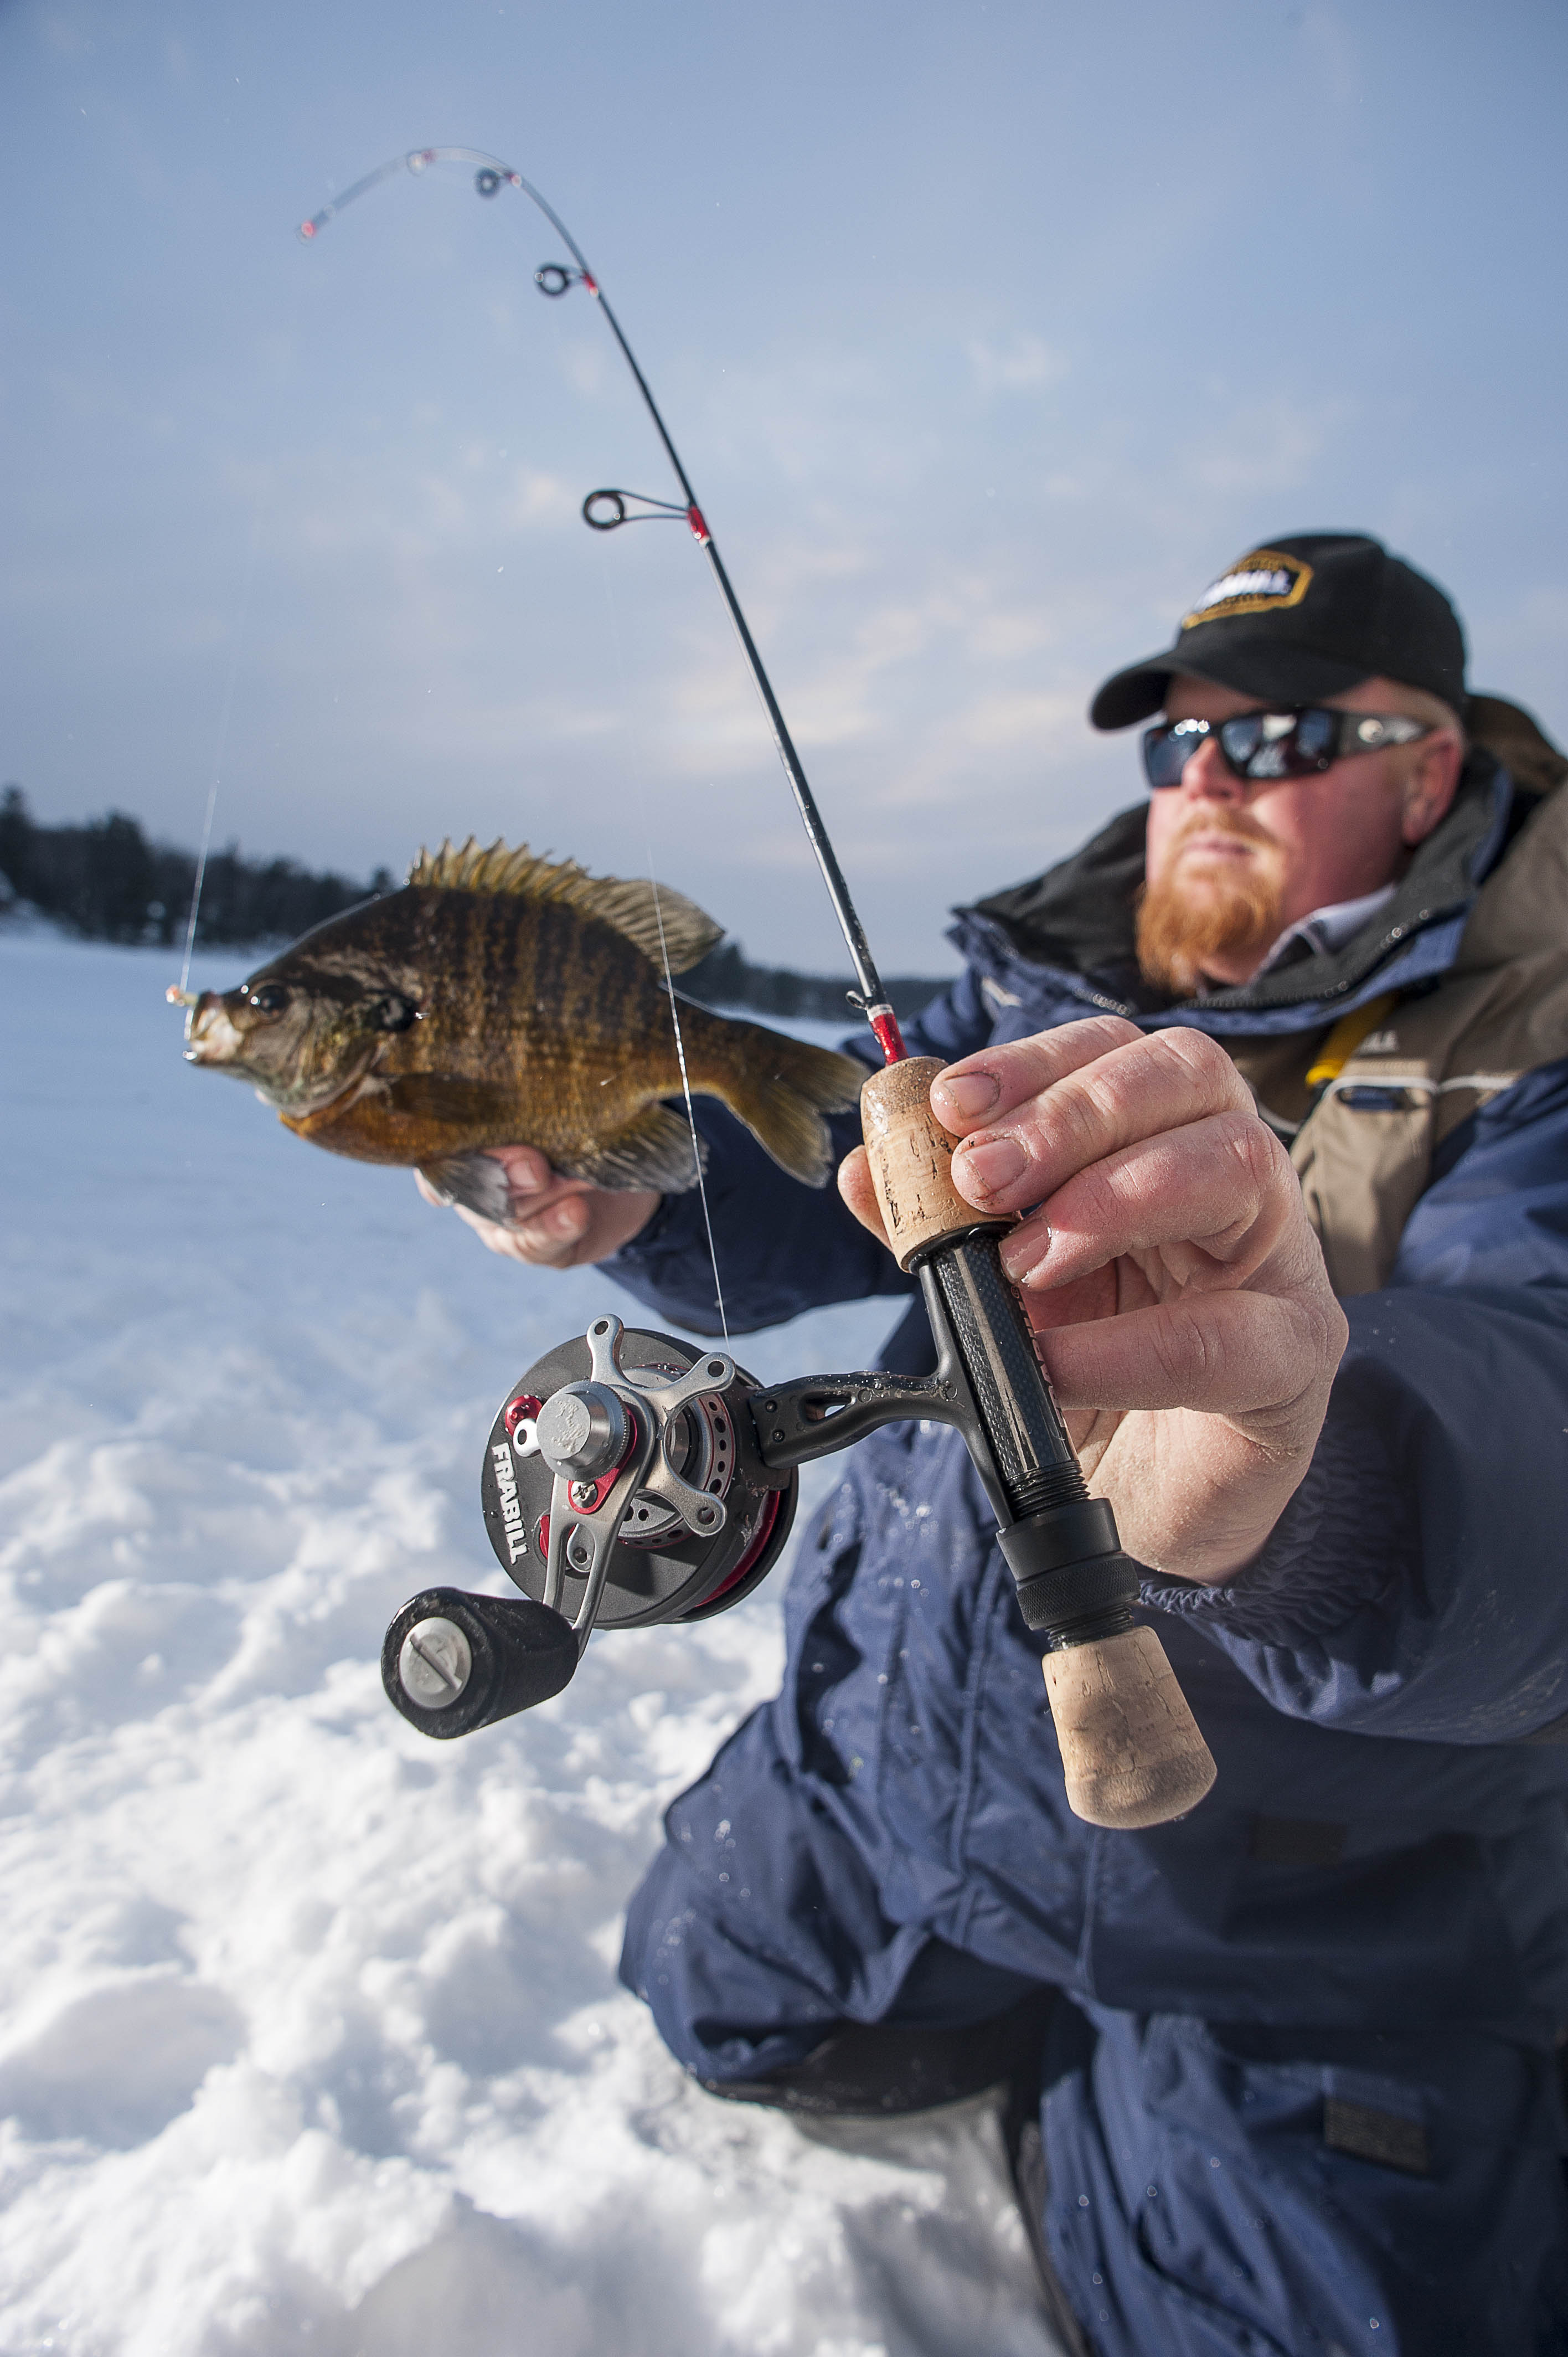 Prepping rods and reels for ice fishing plano synergy for Ice fishing rod